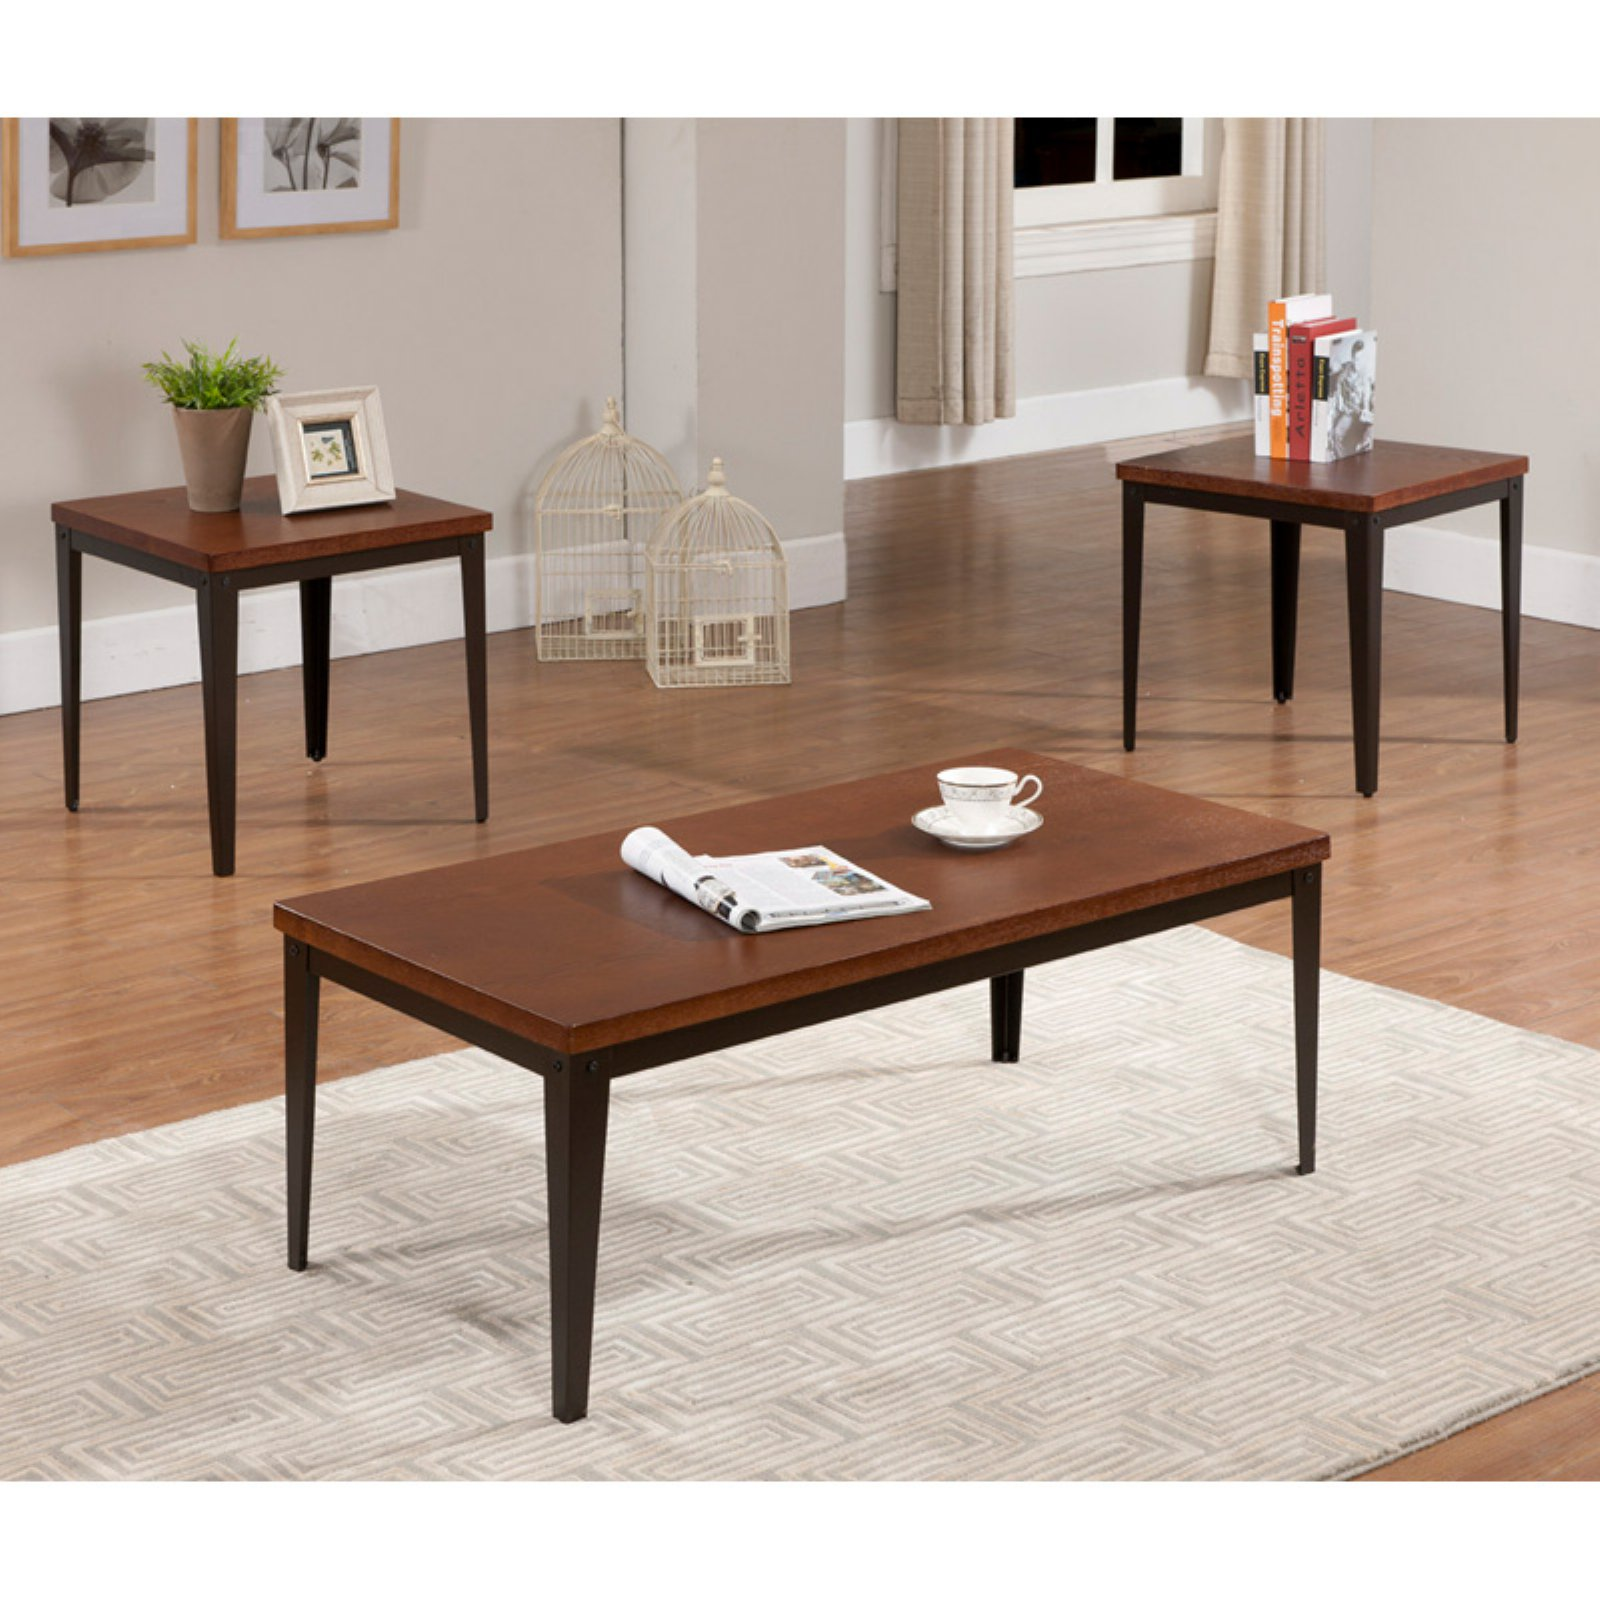 K & B Furniture T88 3 Piece Cocktail and End Table Set